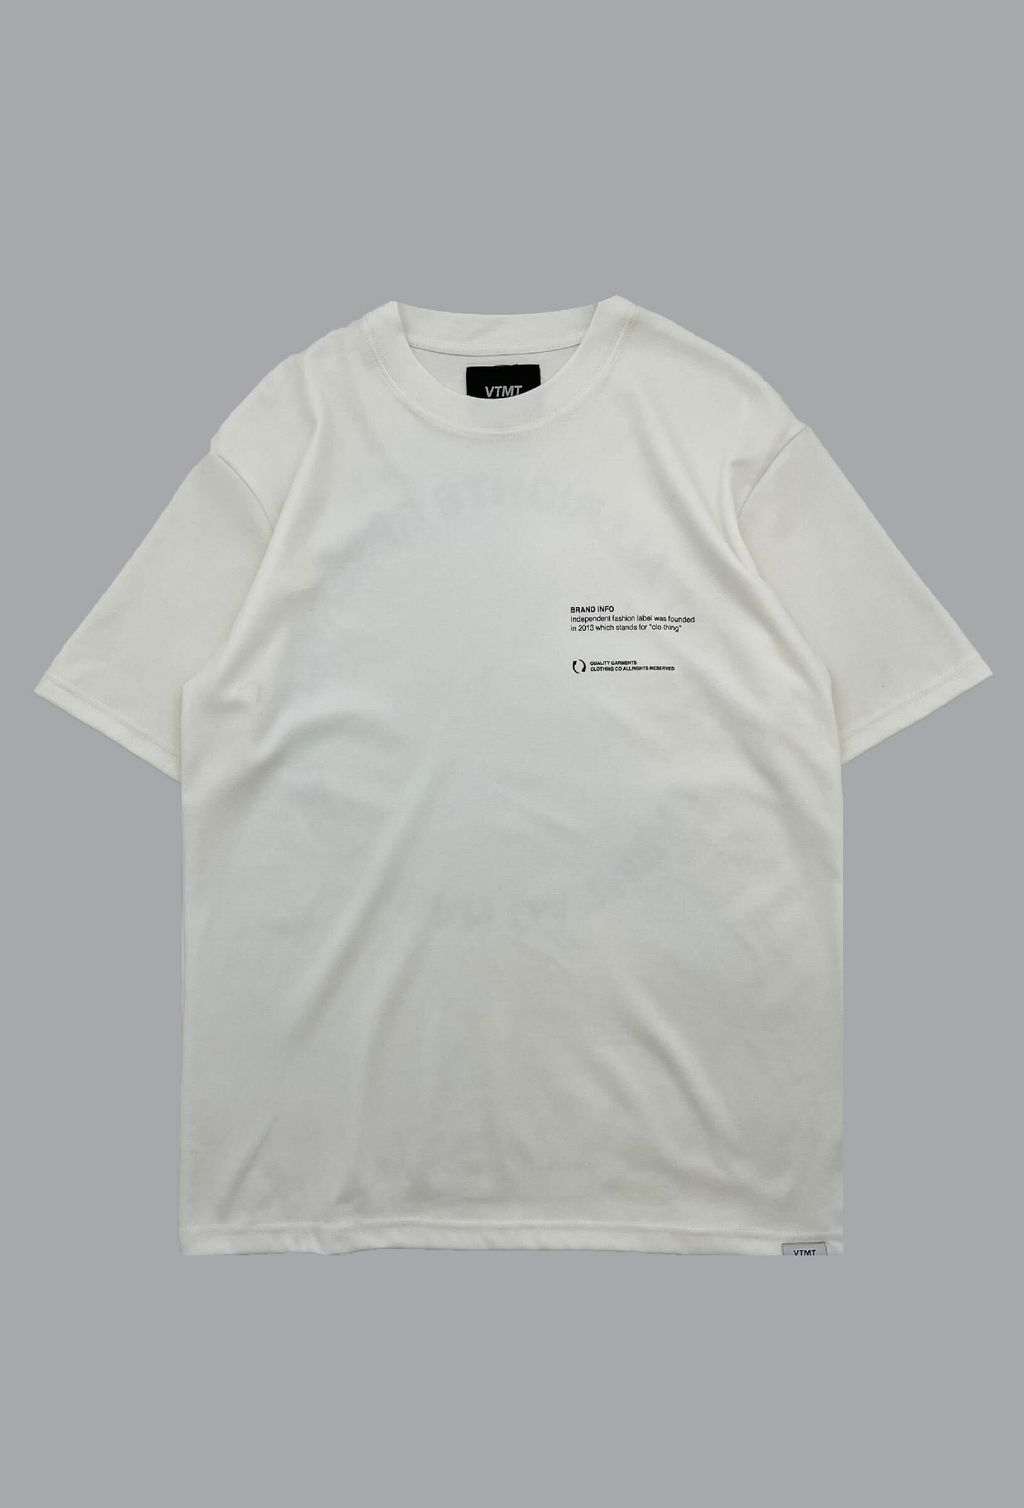 All Right Circle Tee Front White-01.jpg